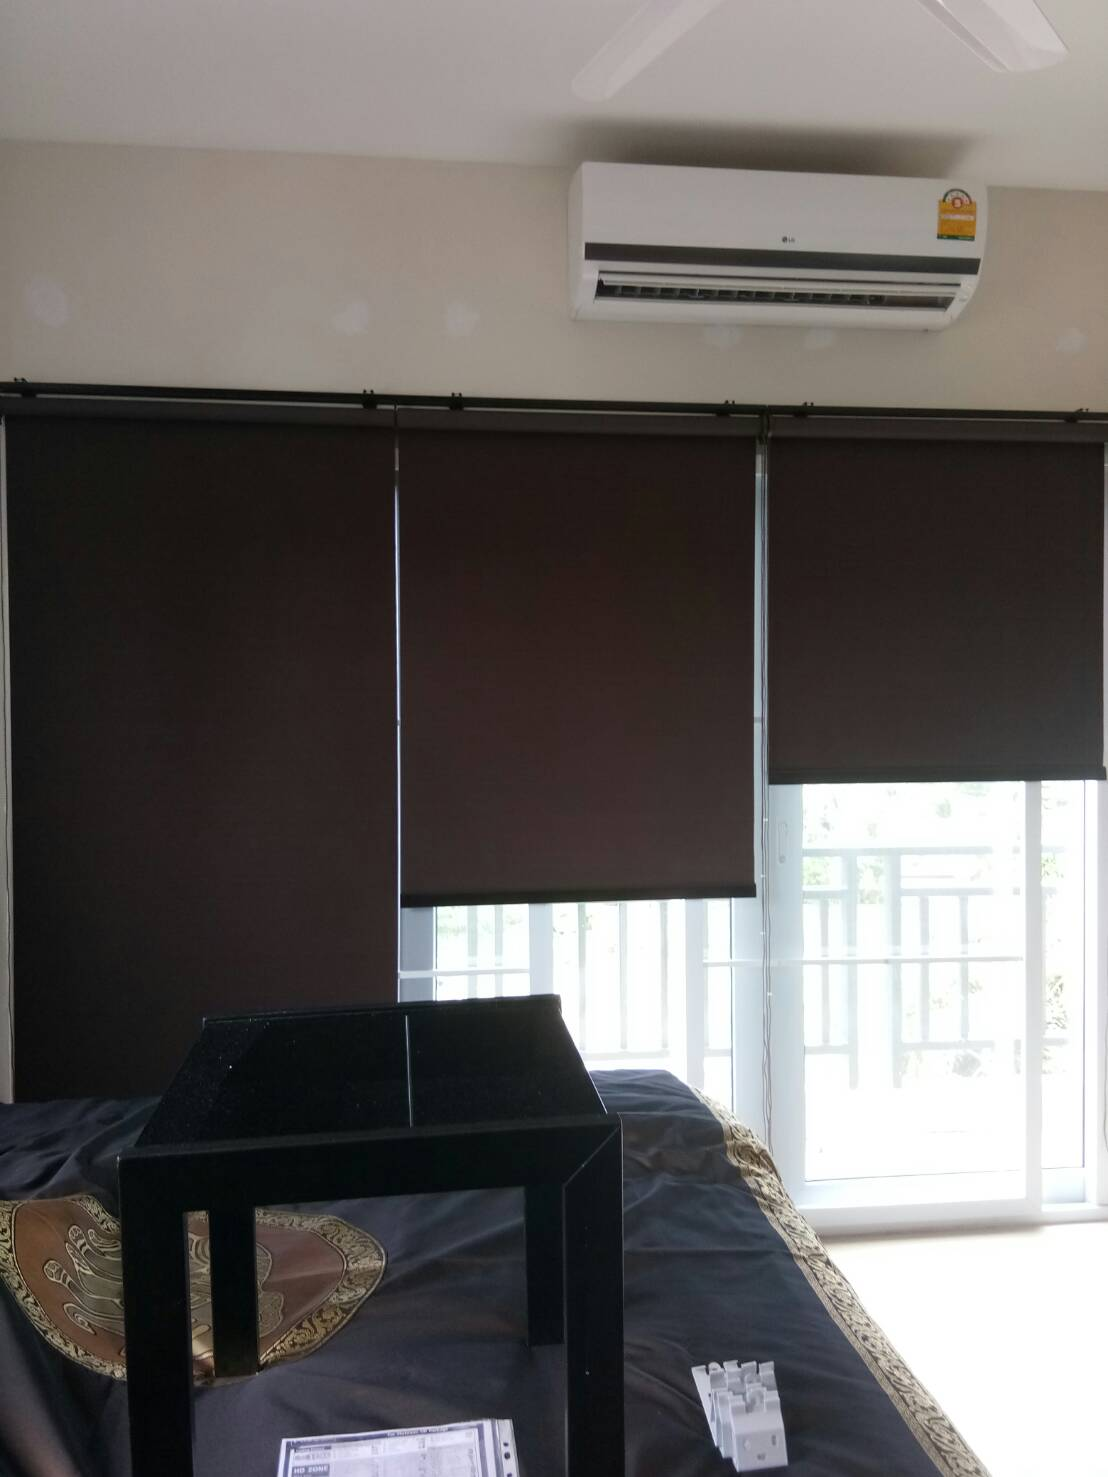 Nitchapat service & selections in Phuket for Curtains, Wood Blinds, Roller Blinds, Vertical Blinds, Sofas, Cushioned Seats, Cushions, Wallpaper & Carpet